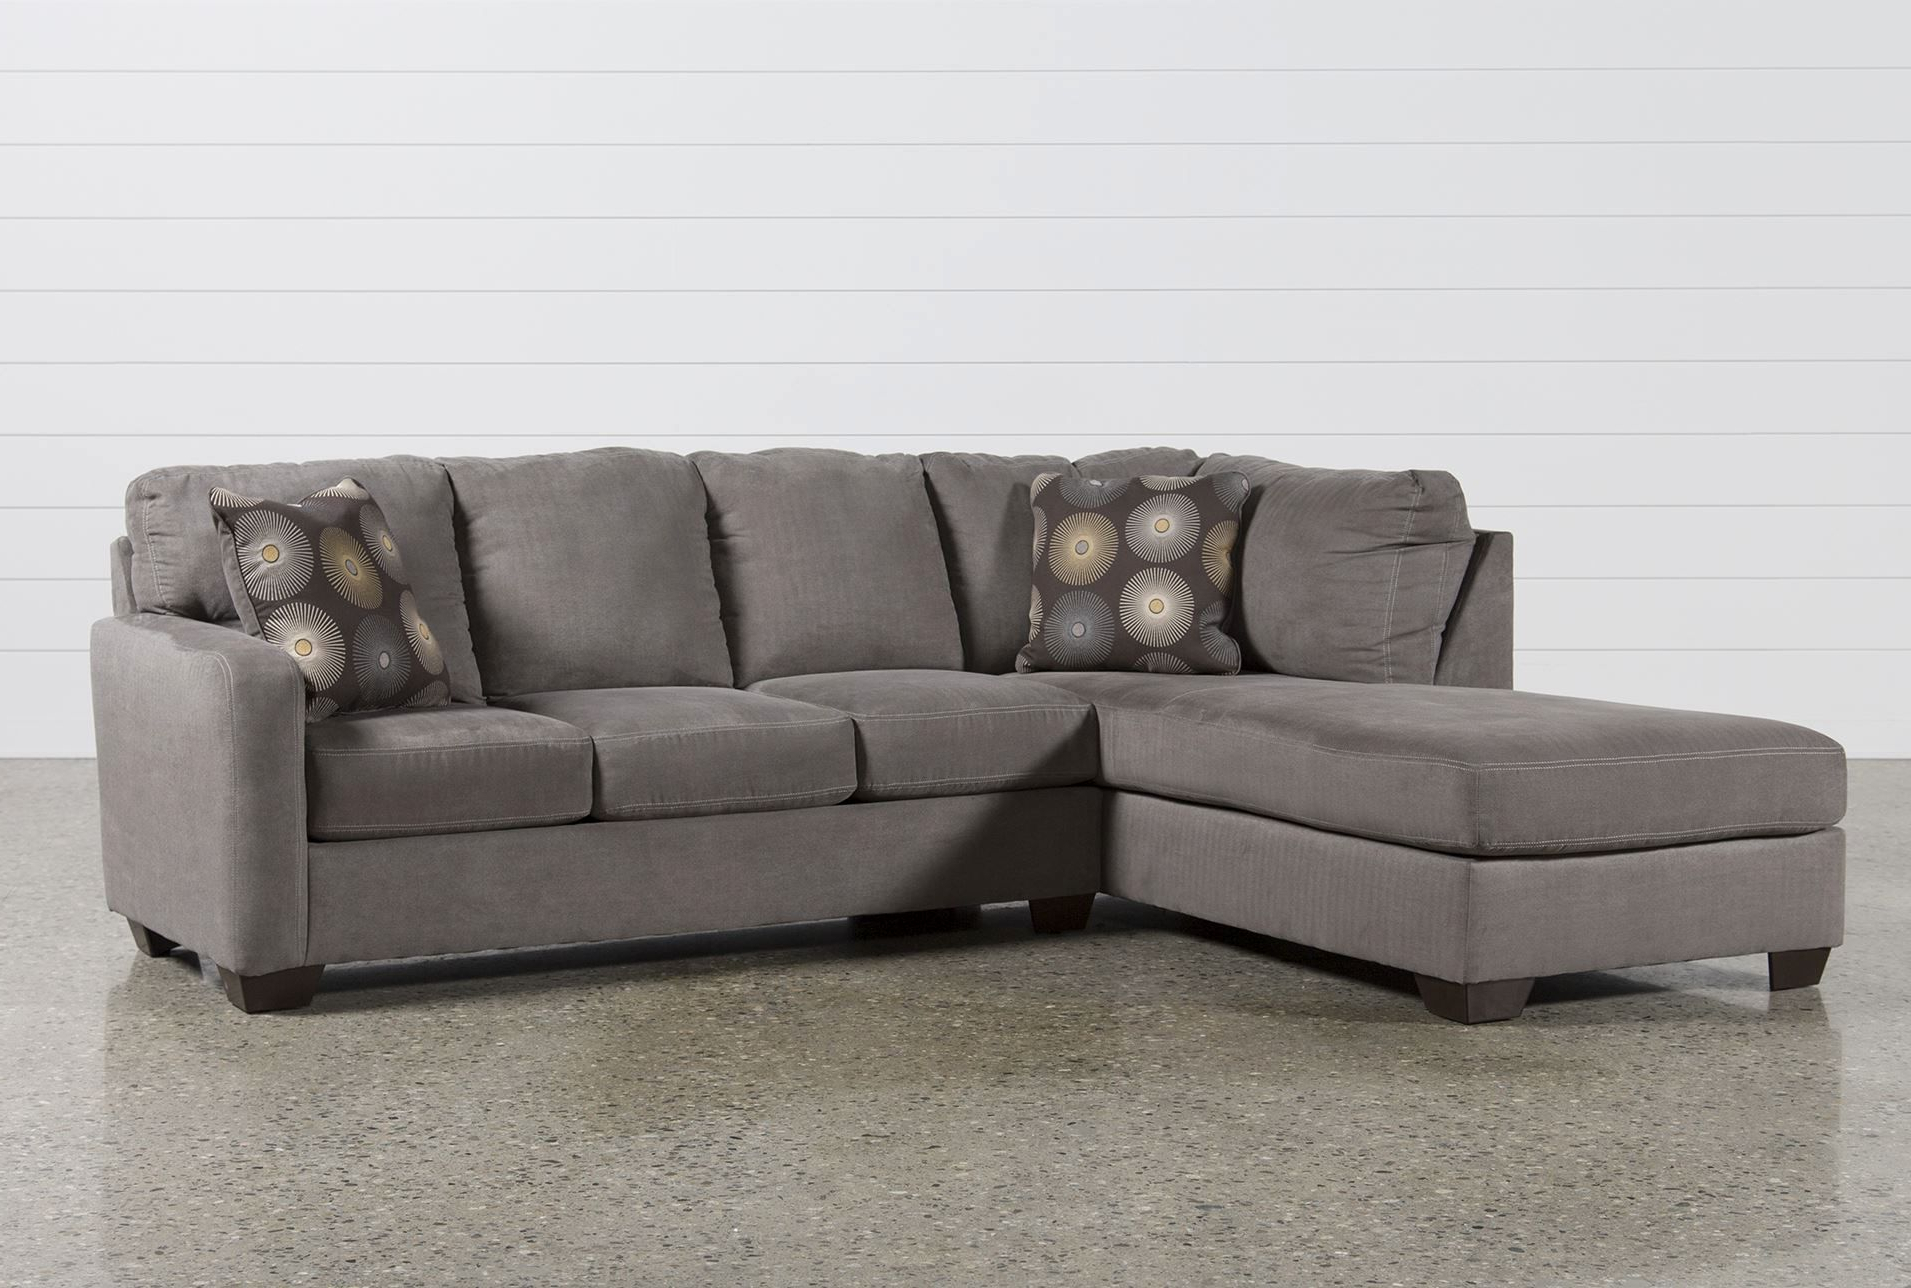 Aspen 2 Piece Sectionals With Laf Chaise Throughout Best And Newest Unique 3 Piece Sectional Sofa Microfiber 3 Piece Sectional Sofa (Gallery 7 of 20)